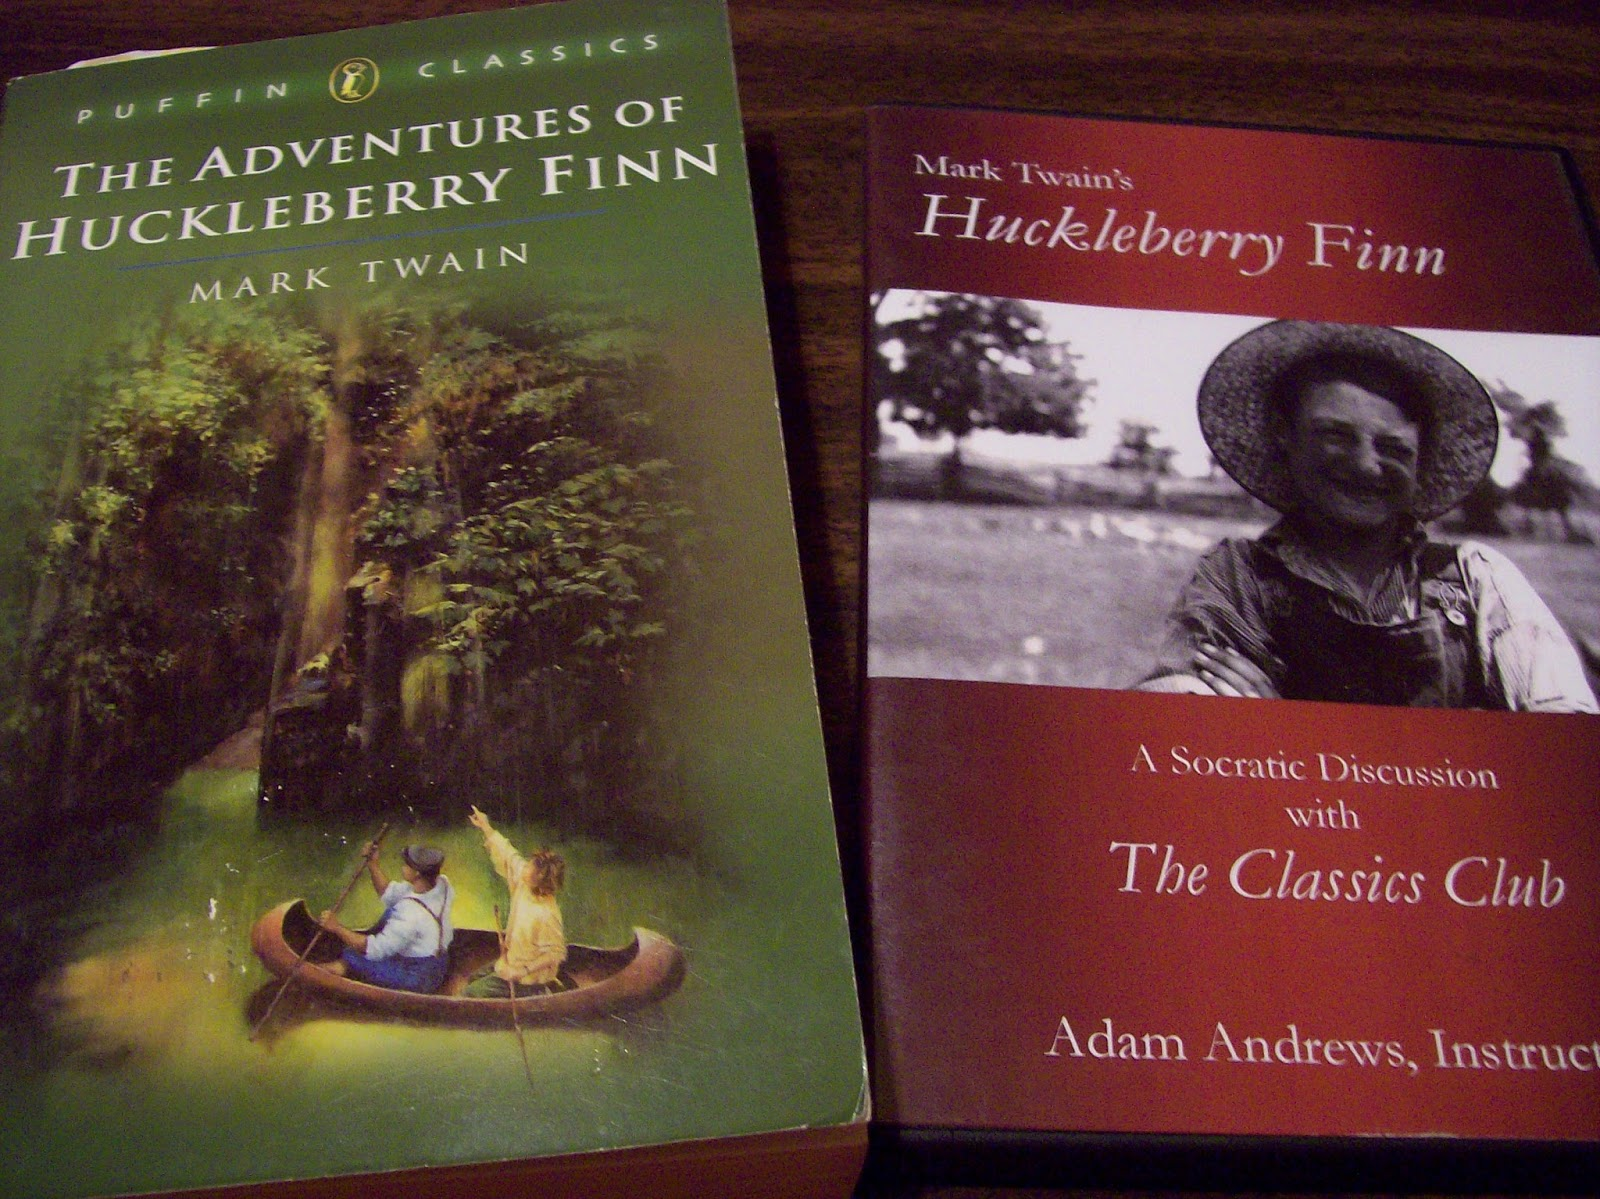 the adventures of hucleberry finn Media in category adventures of huckleberry finn the following 10 files are in this category, out of 10 total.